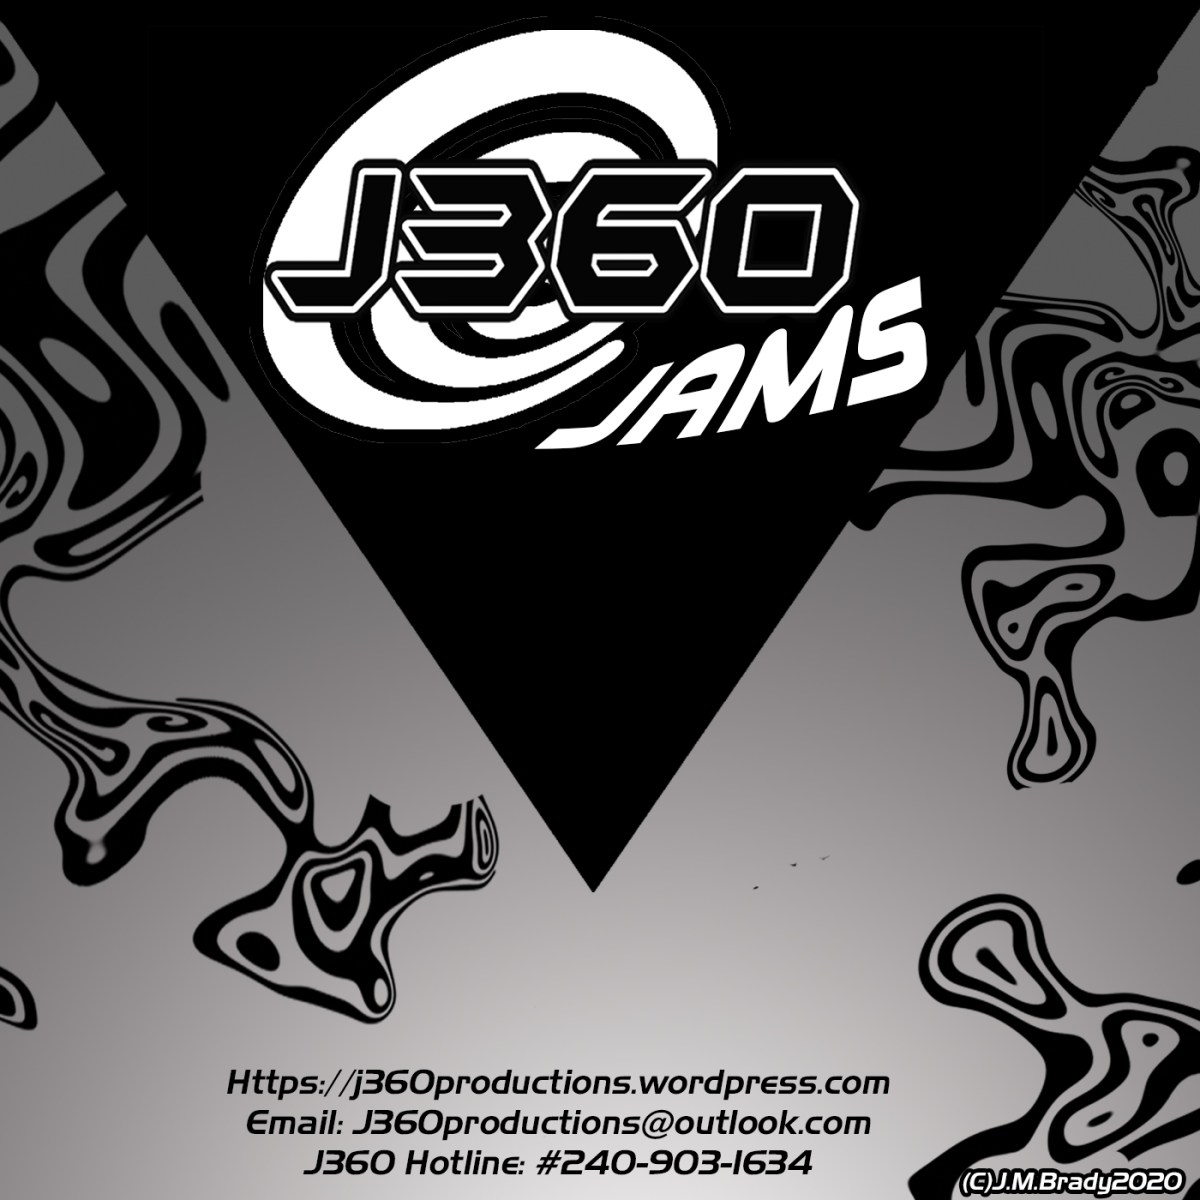 This will lead you to J360 Jams's show page